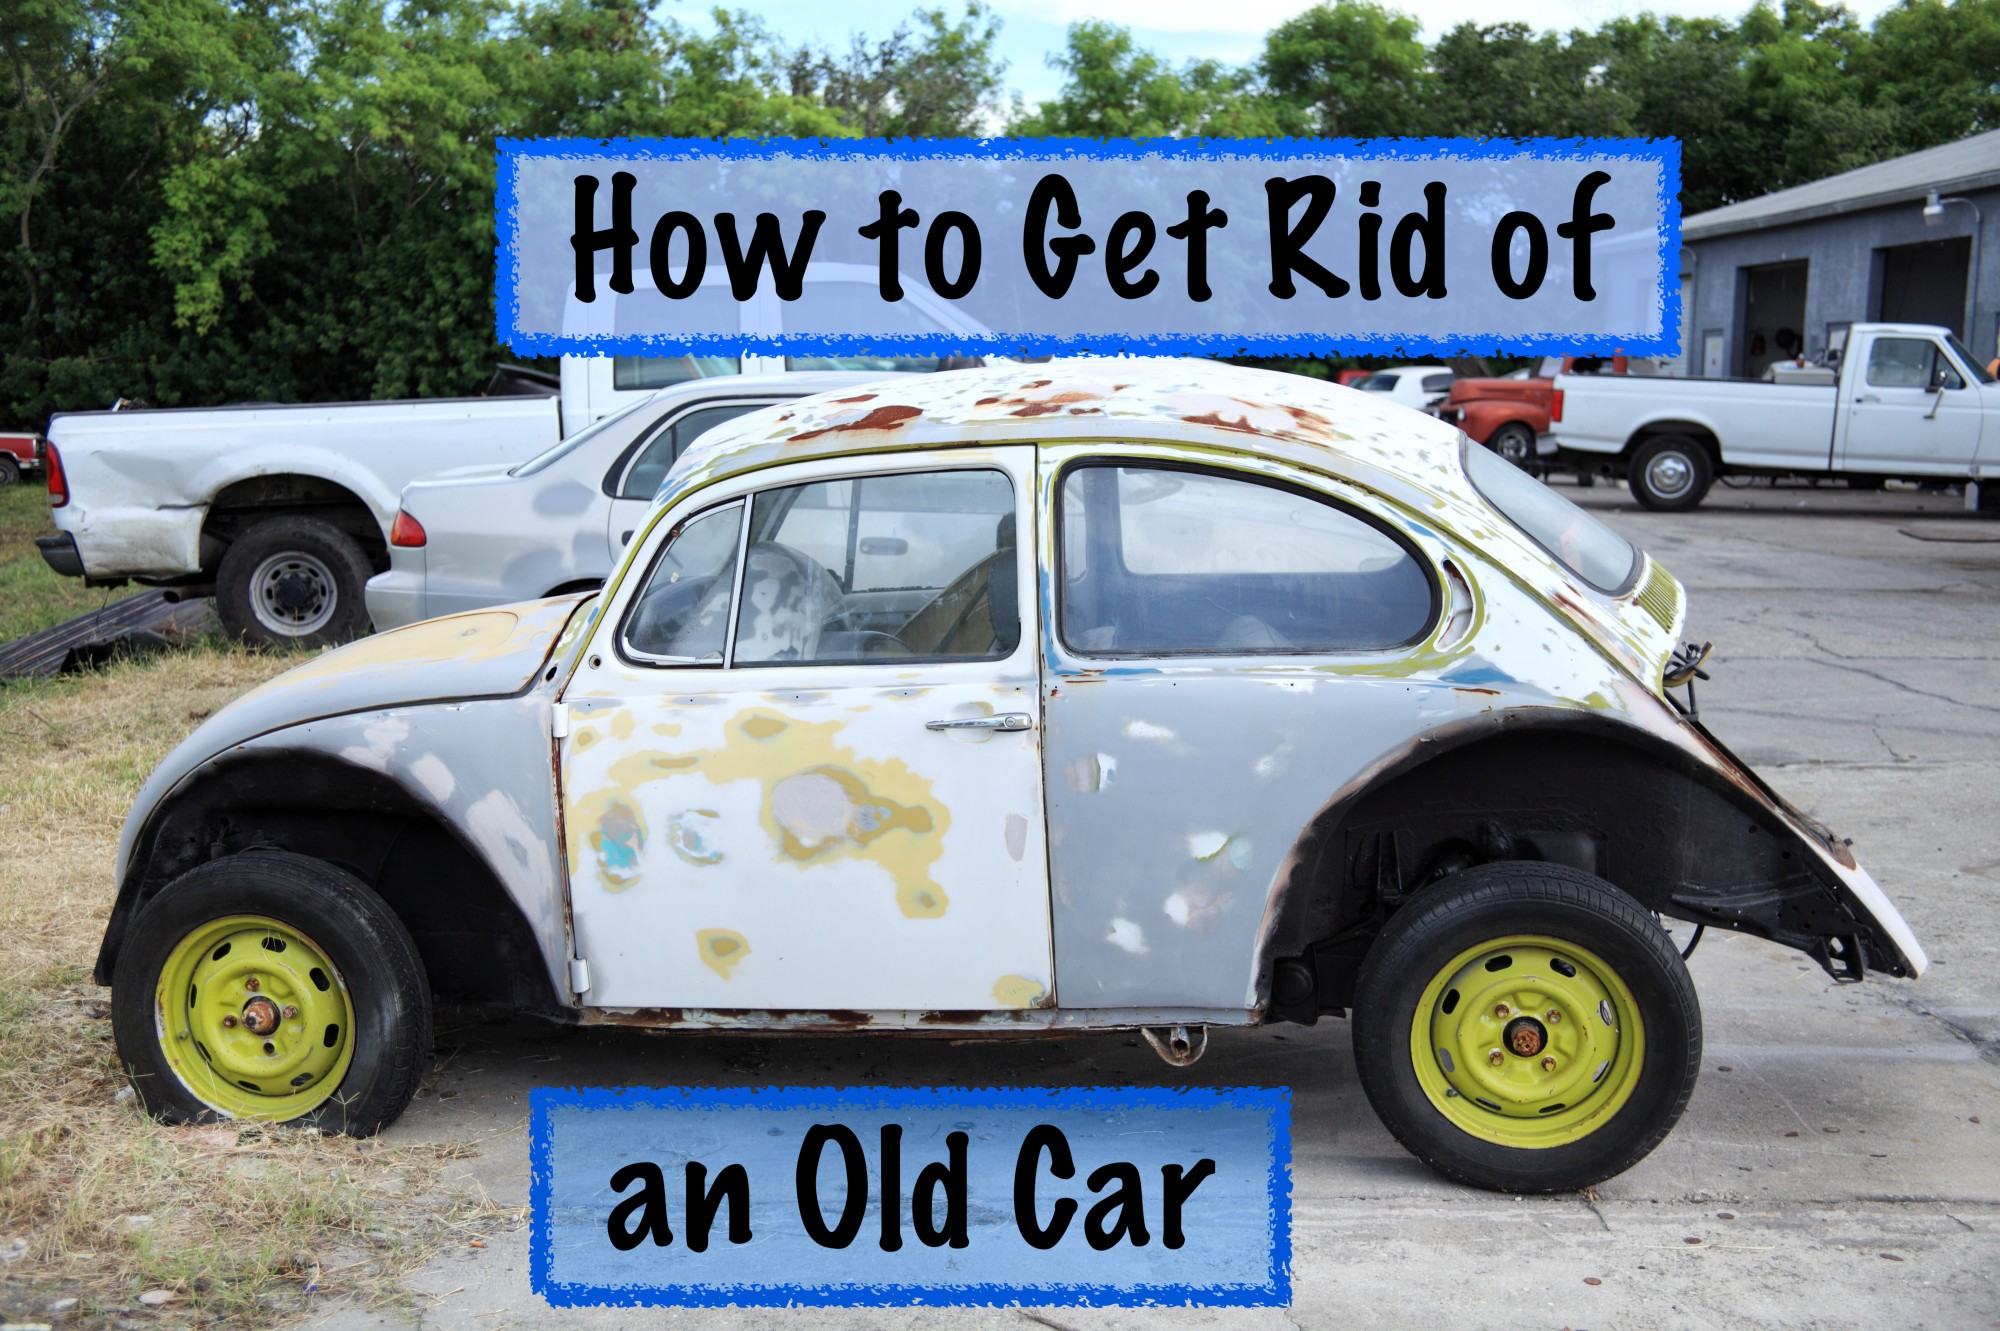 Easy Ways To Get Rid Of A Car That's Old For Cash